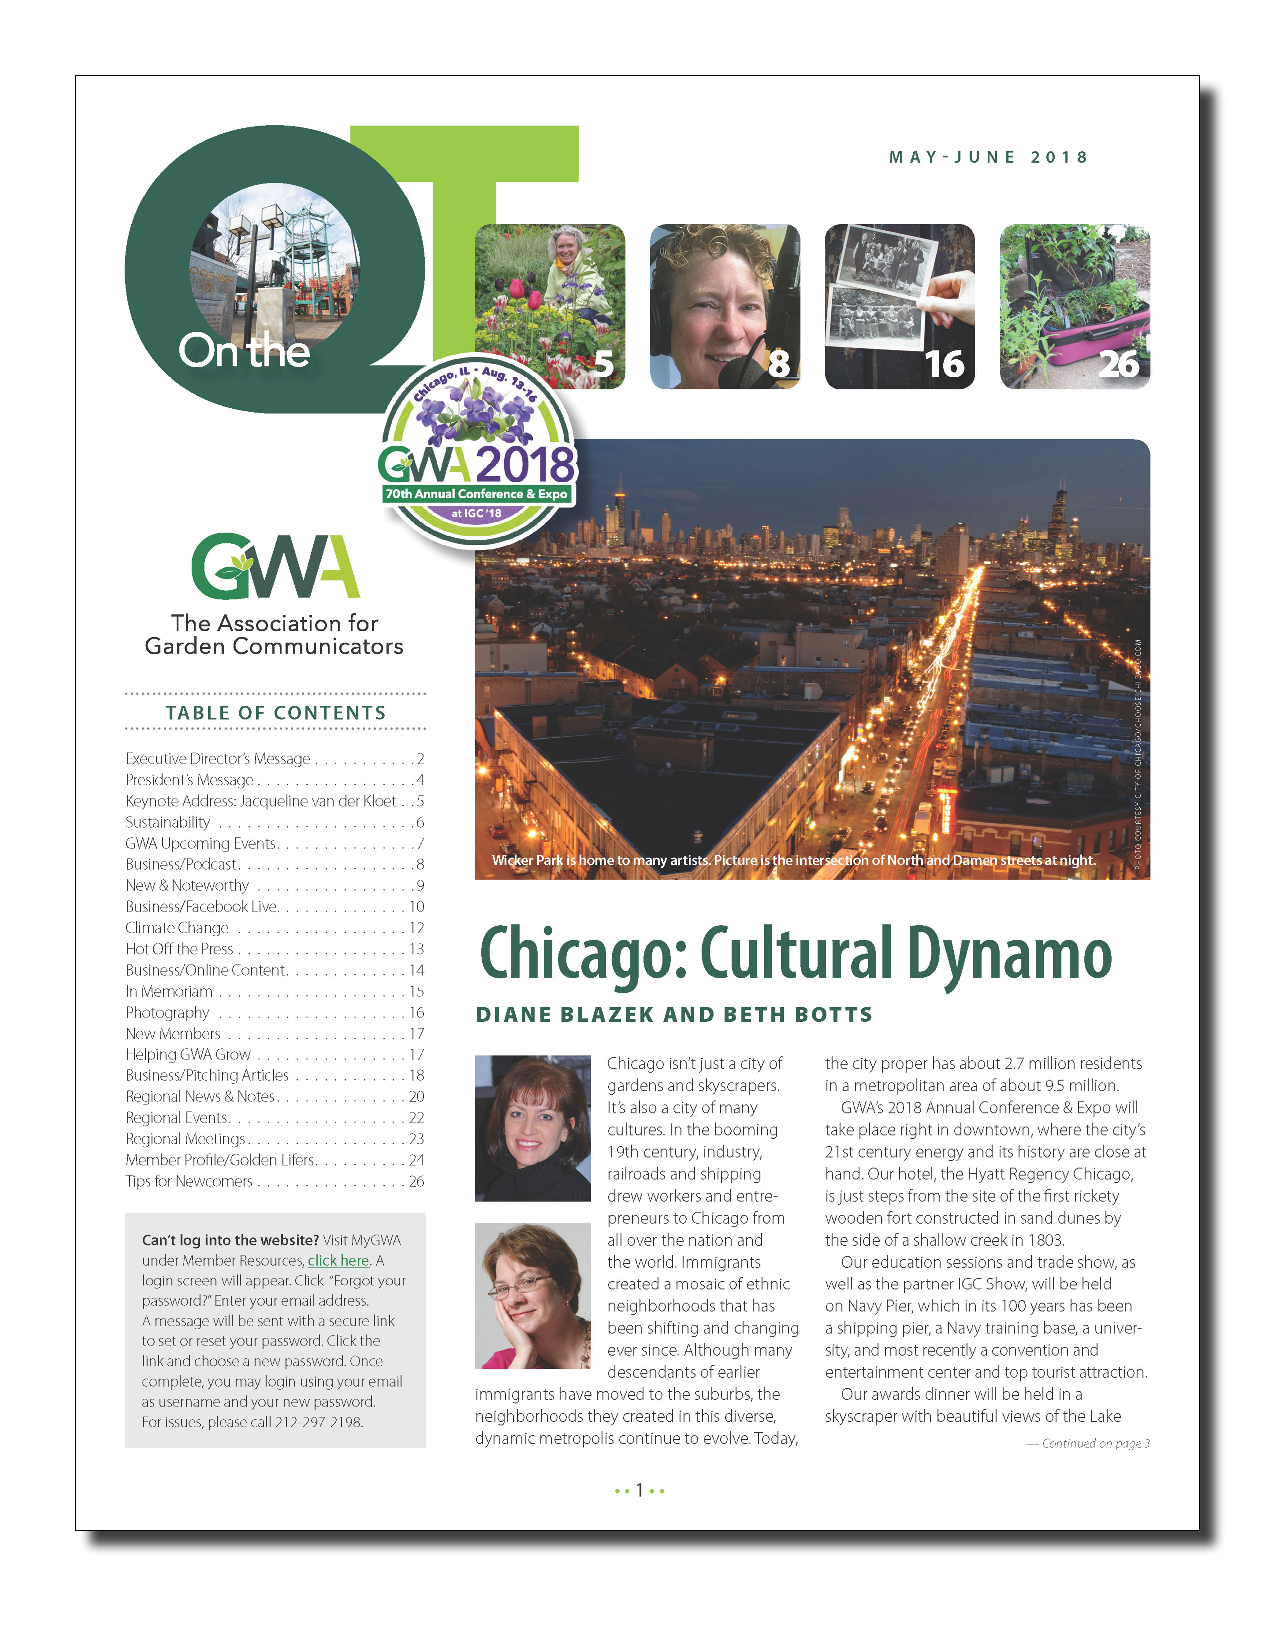 GWA_On_the_QT_May-Jun_2018_Cover.png